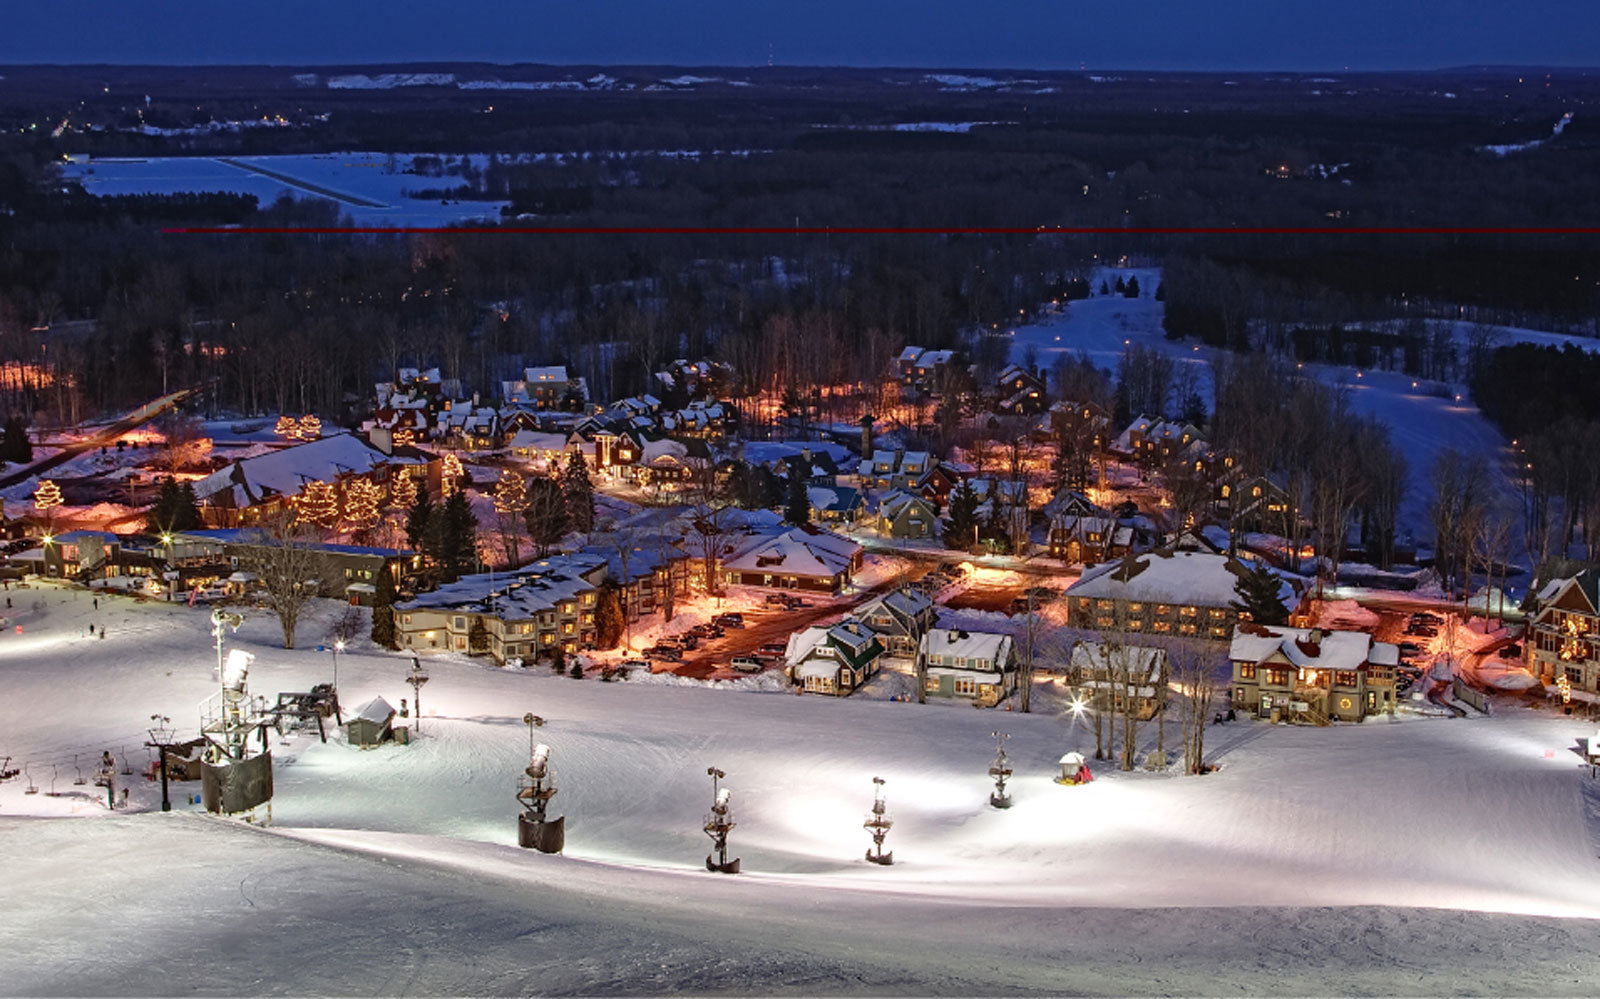 2. Crystal Mountain,  Michigan